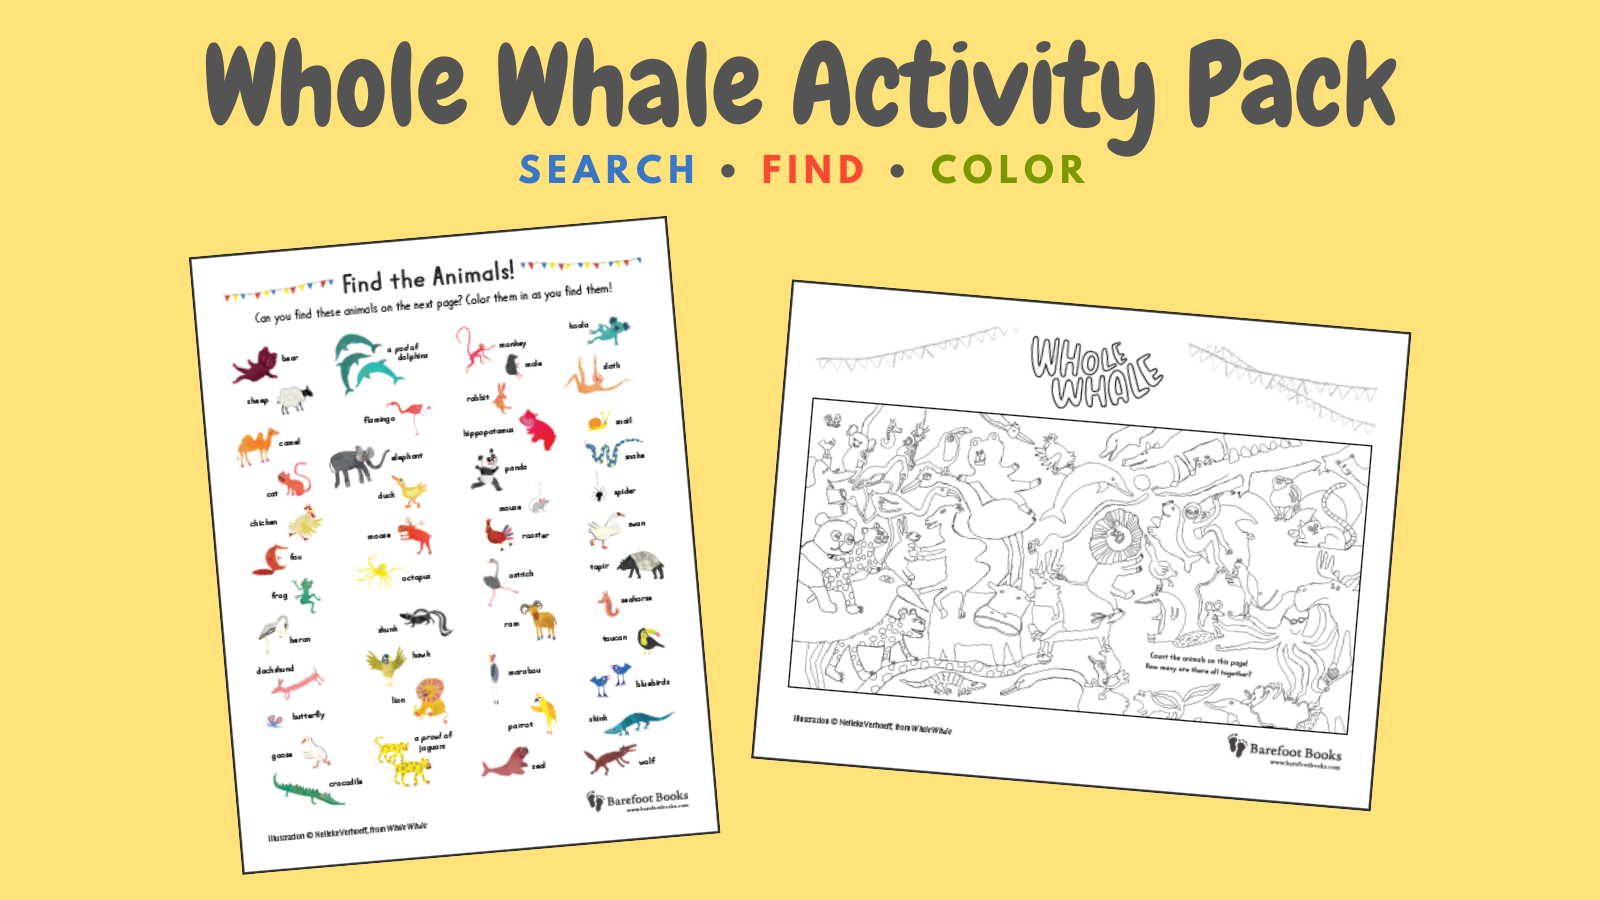 Whole Whale Activity Pack: Search • Find • Color